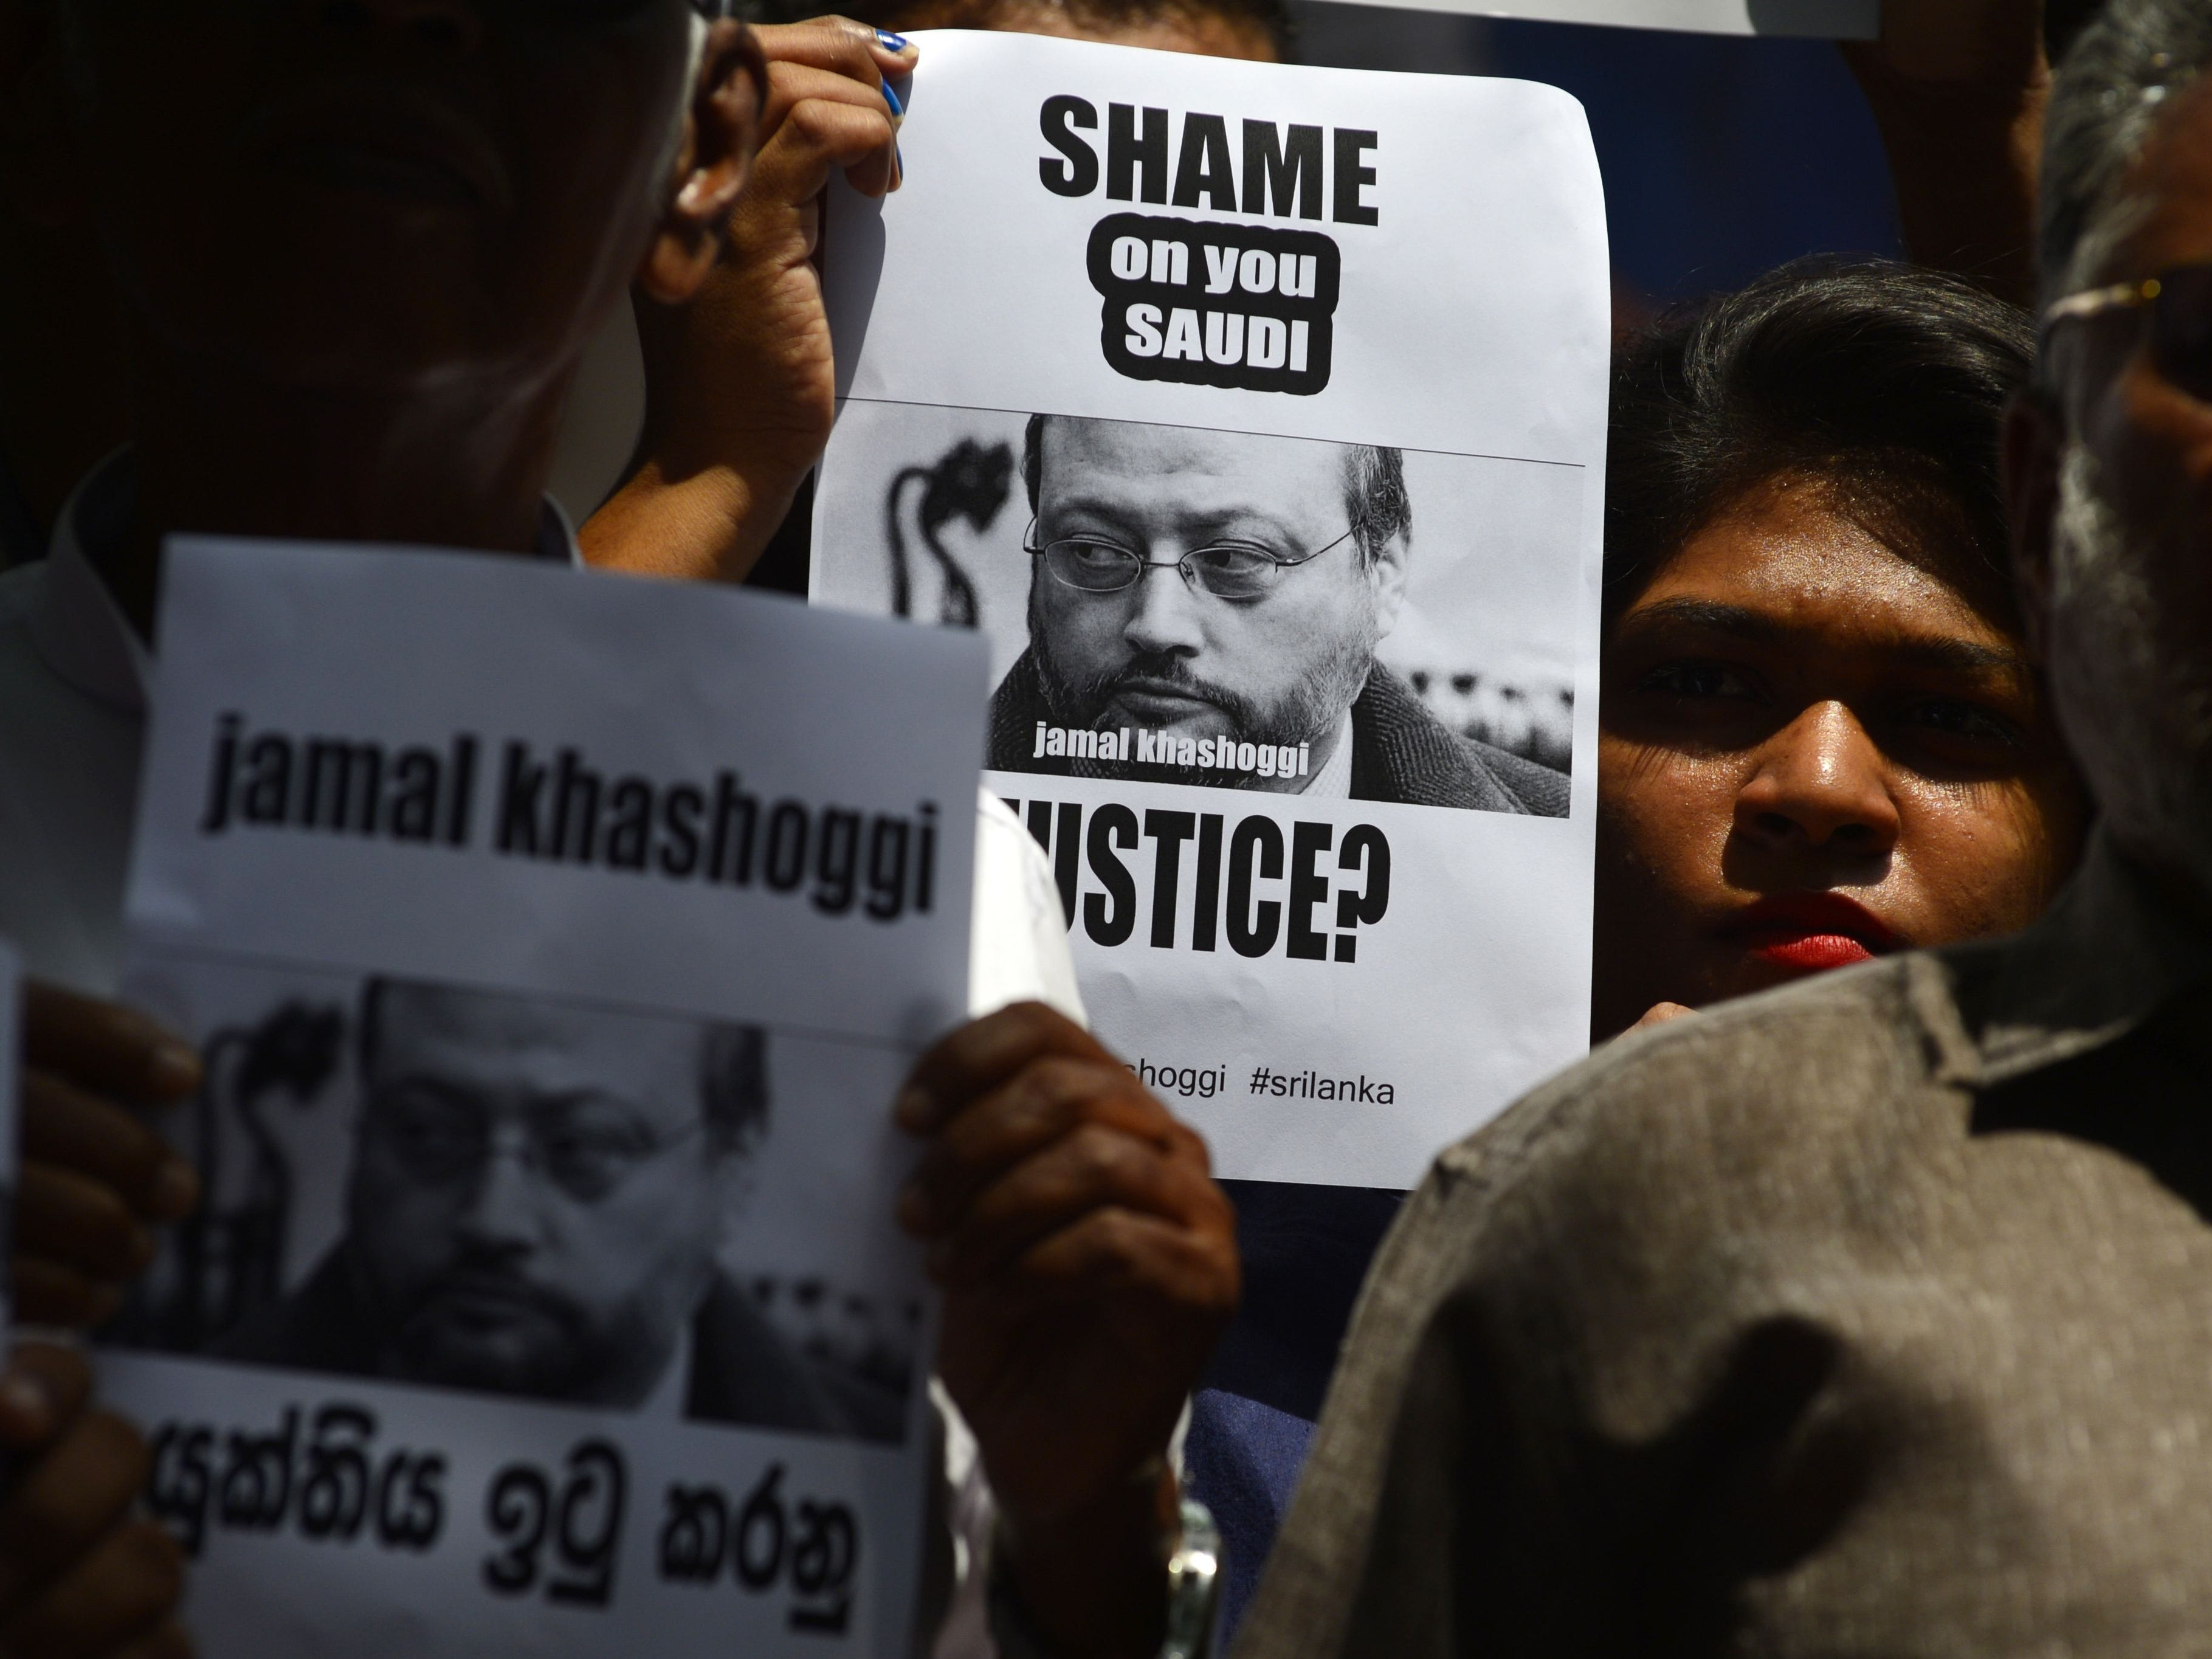 "Members of the Sri Lankan web journalist association hold placards with the image of Saudi journalist Jamal Khashoggi during a demonstration outside the Saudi Embassy in Colombo on October 25, 2018, following Khashoggi's dissapearance on October 2 at the Saudi consulate in Istanbul. - Saudi Arabia's crown prince denounced the ""repulsive"" murder of journalist Jamal Khashoggi and vowed justice will prevail, in his first public comments on the case, without addressing US accusations of a monumental cover-up."